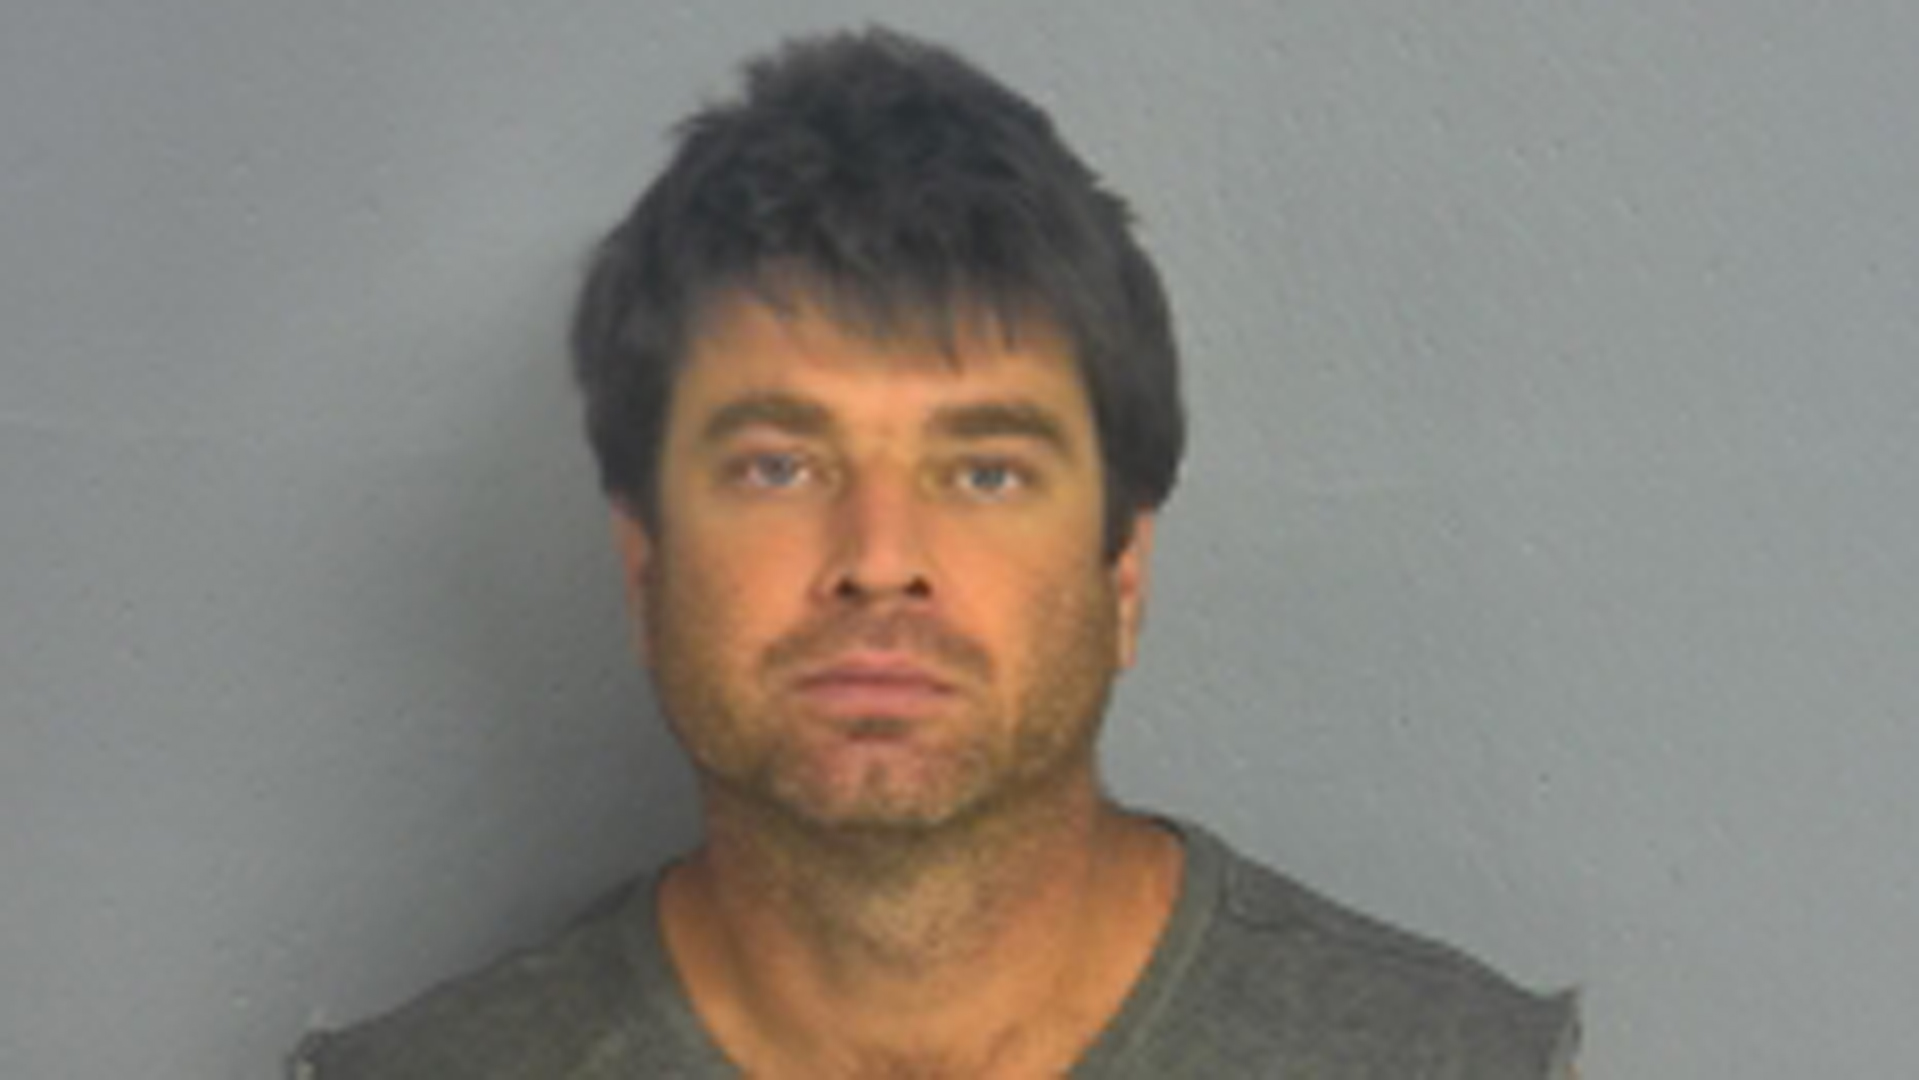 Jason Hawkins is seen in a booking photo released by the Greene County Sheriff's Office.